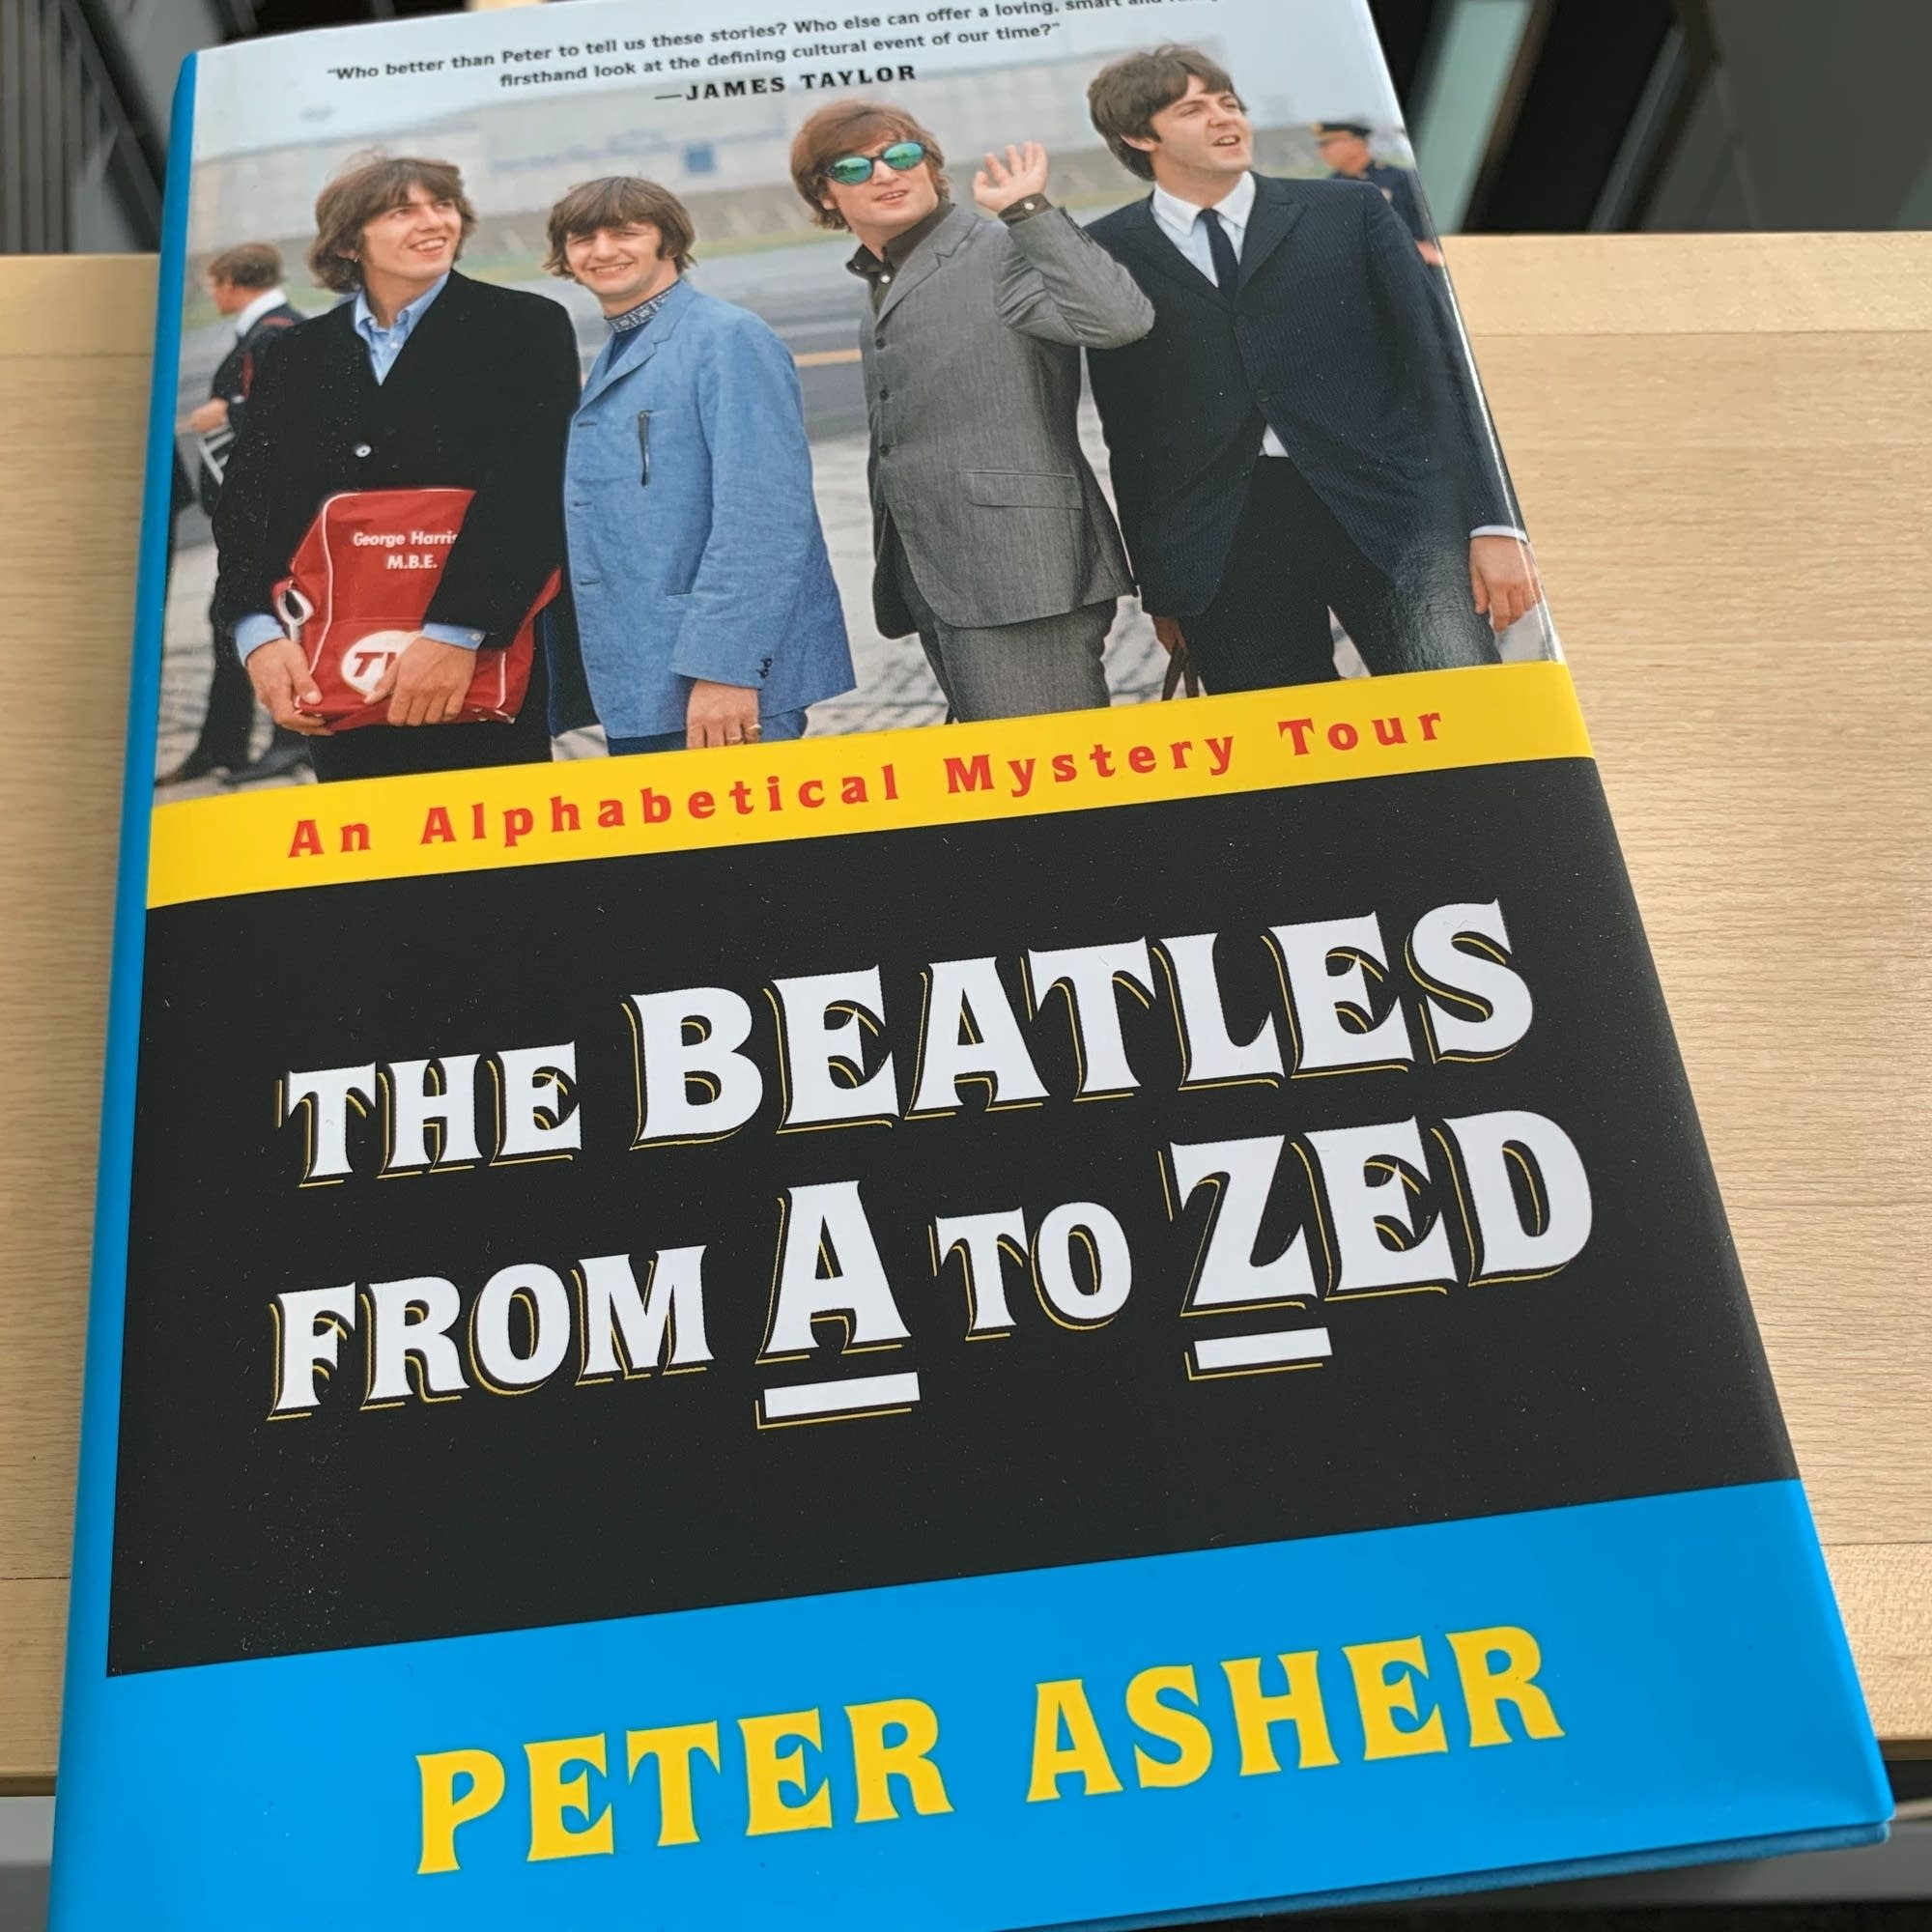 Peter Asher's 'The Beatles from A to Zed.'